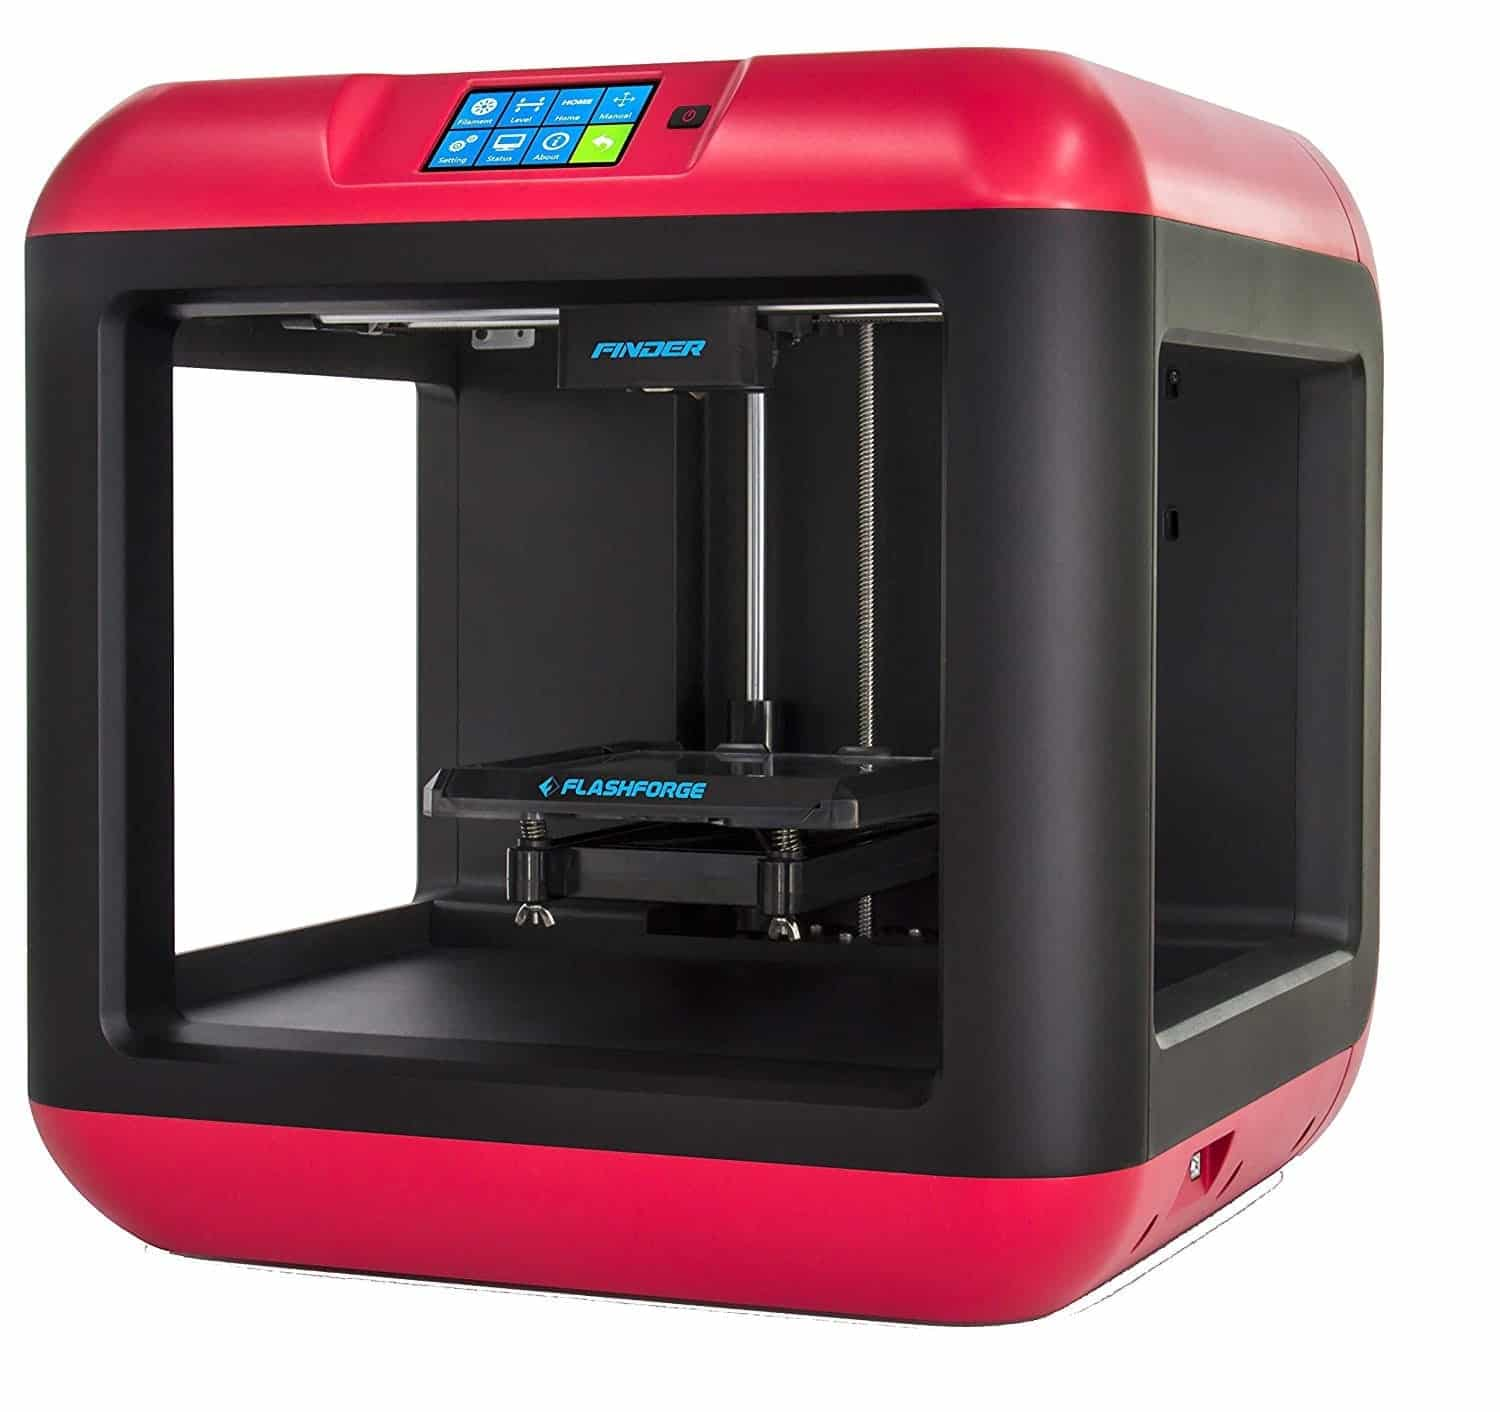 best 3d printer under 400 FlashFroge 3D Printer